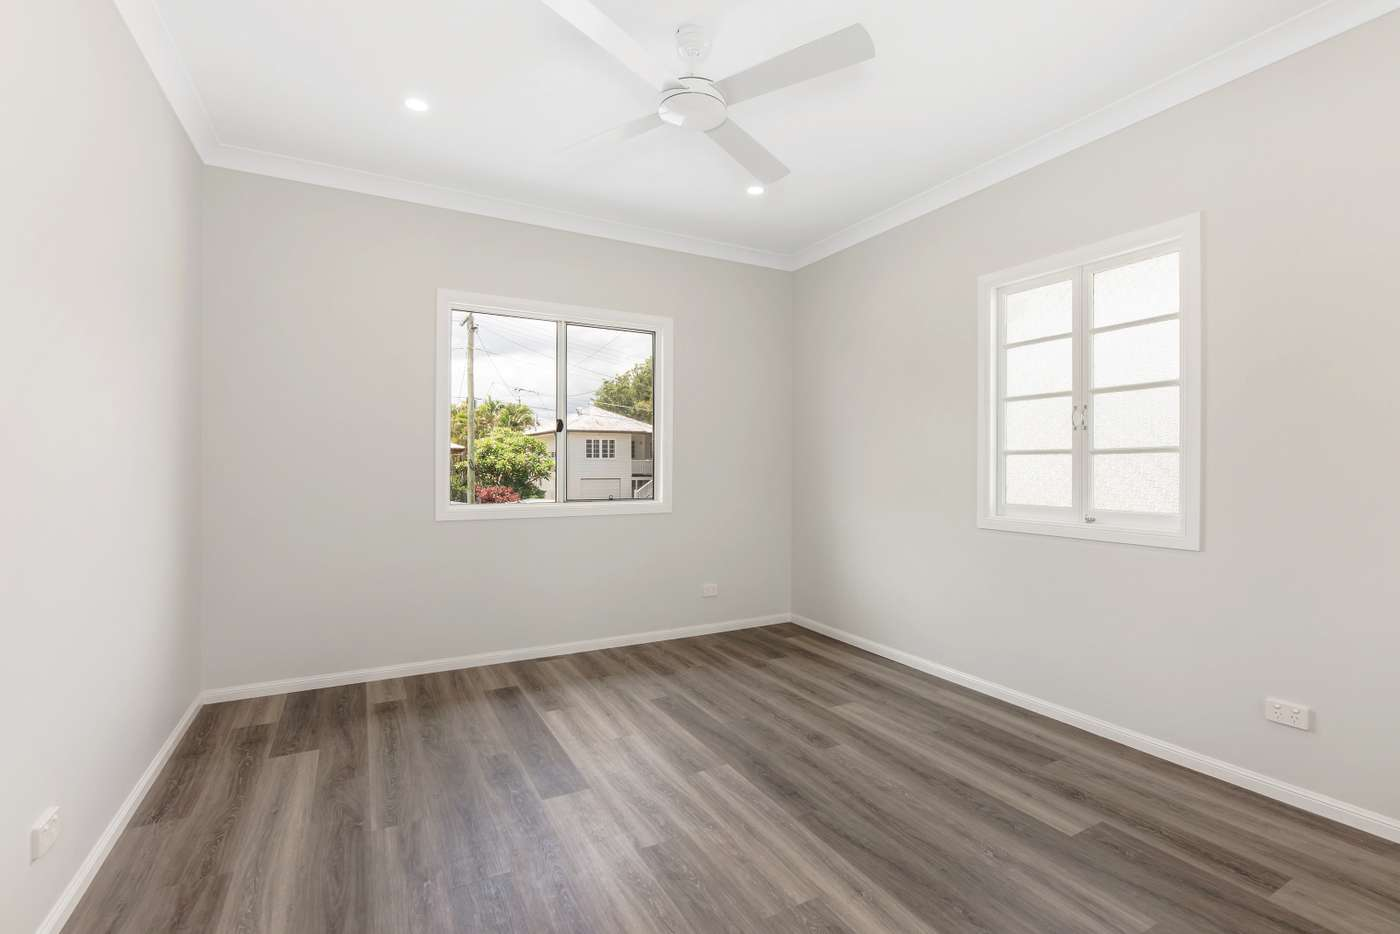 Sixth view of Homely house listing, 12 England Street, East Ipswich QLD 4305